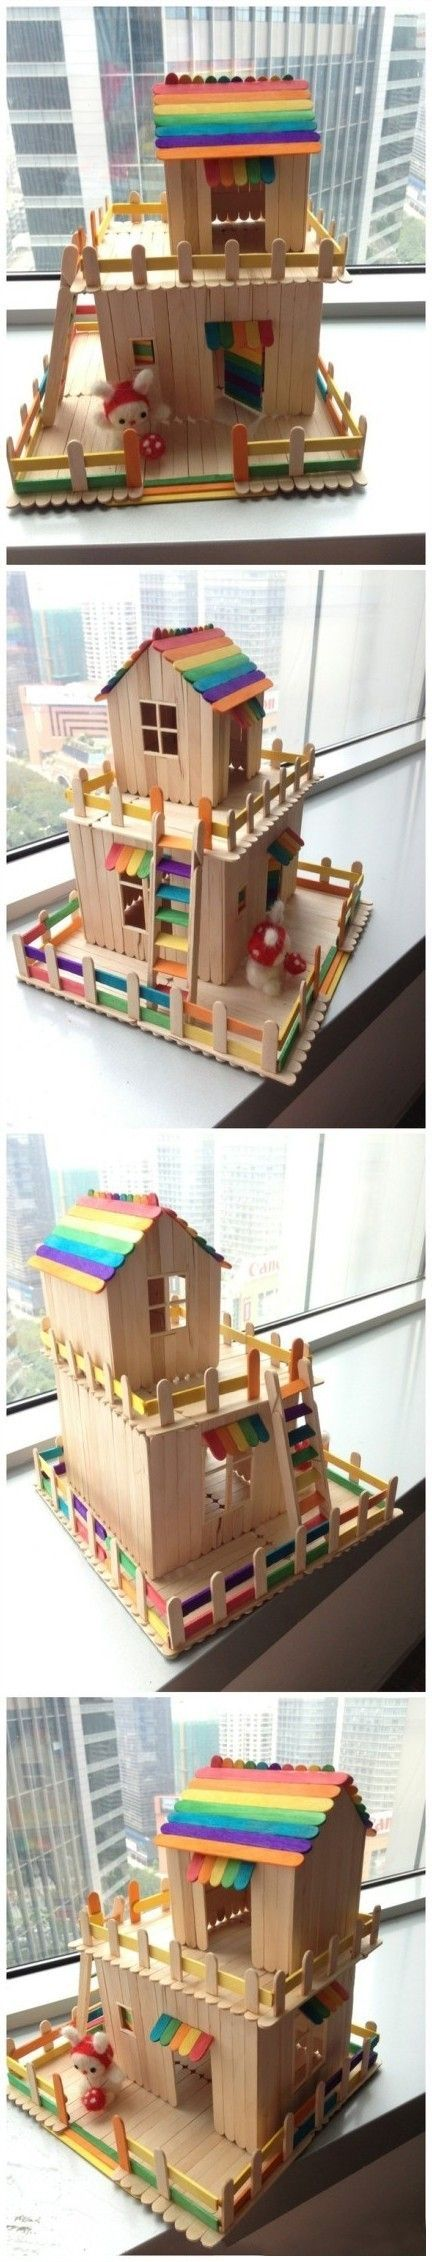 Casinha bem Colorida feita com Palito de Picolé -  /   Colorful House Made with Popsicle Stick -